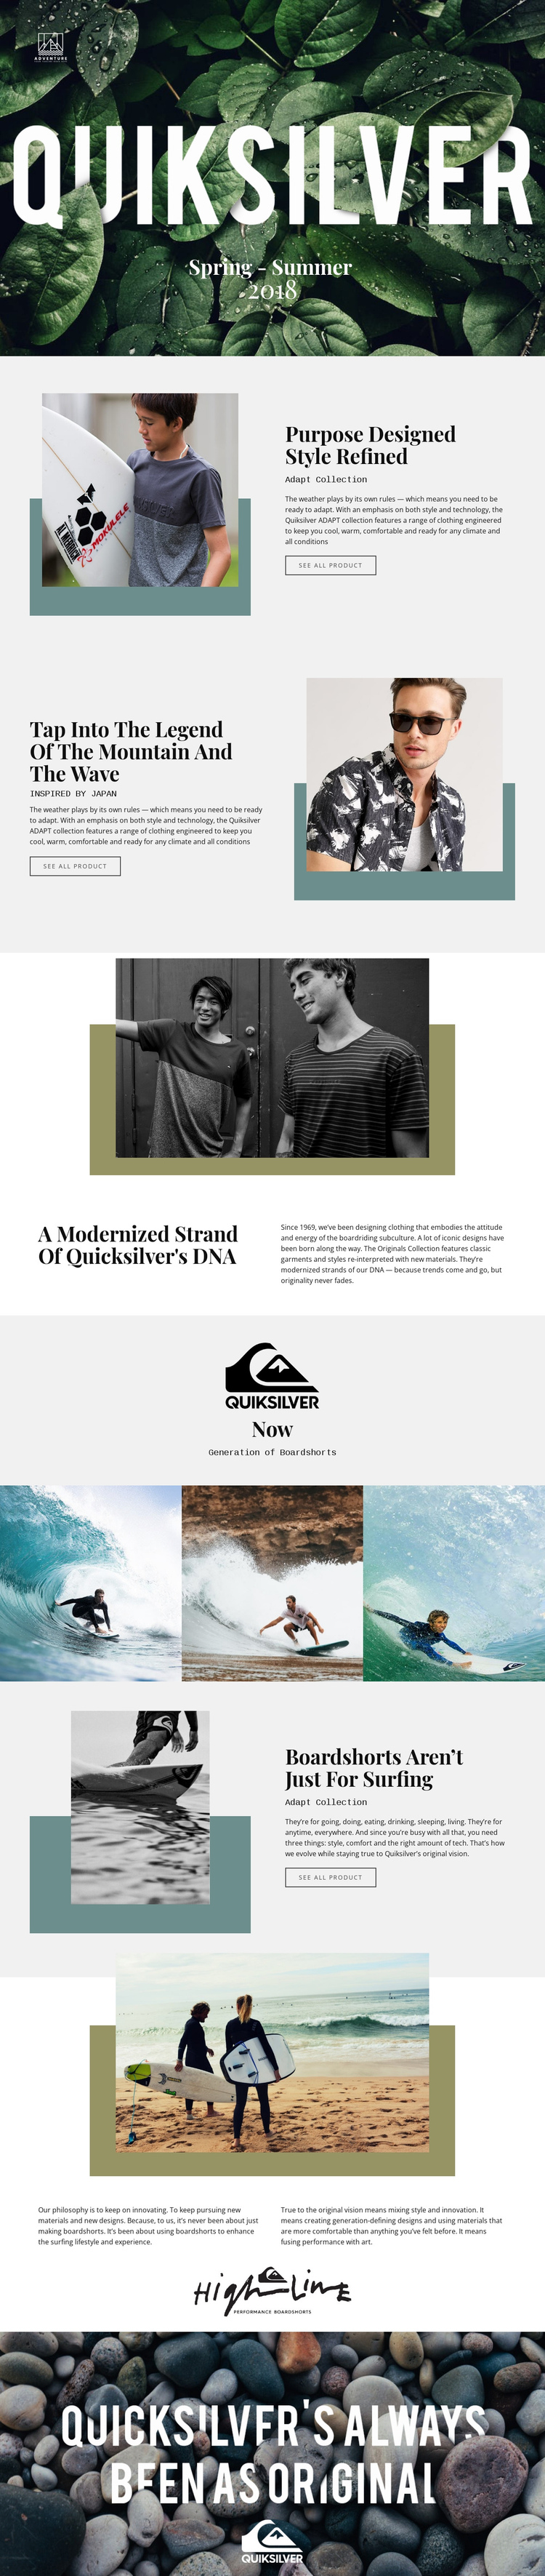 Quiksilver Website Builder Software